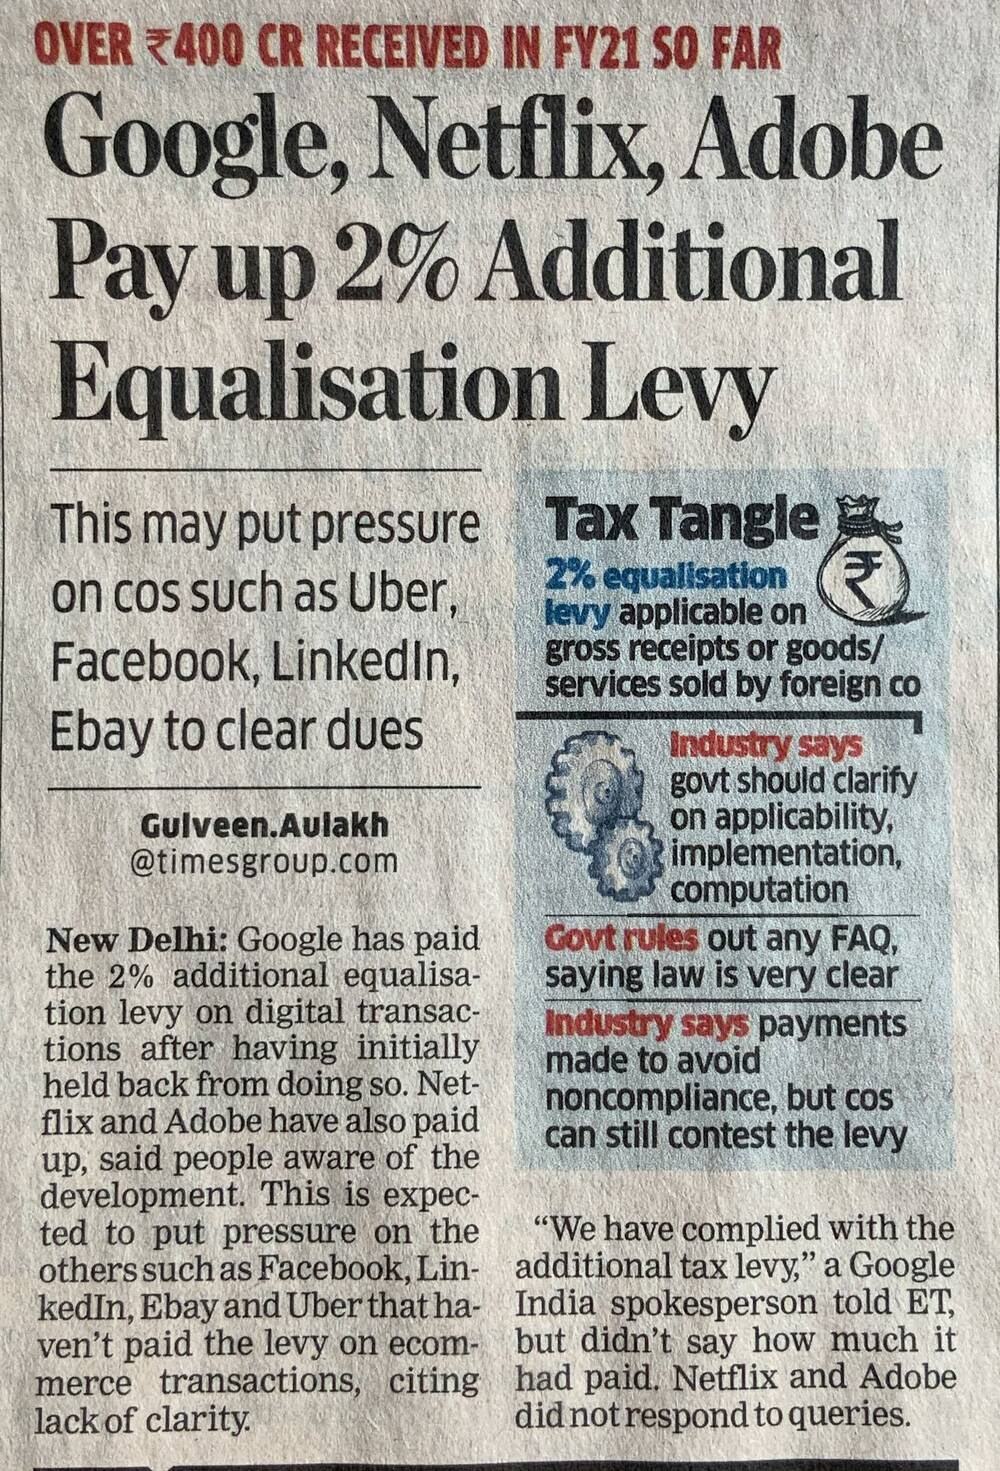 Courtesy: The Economic Times, 8th October 2020